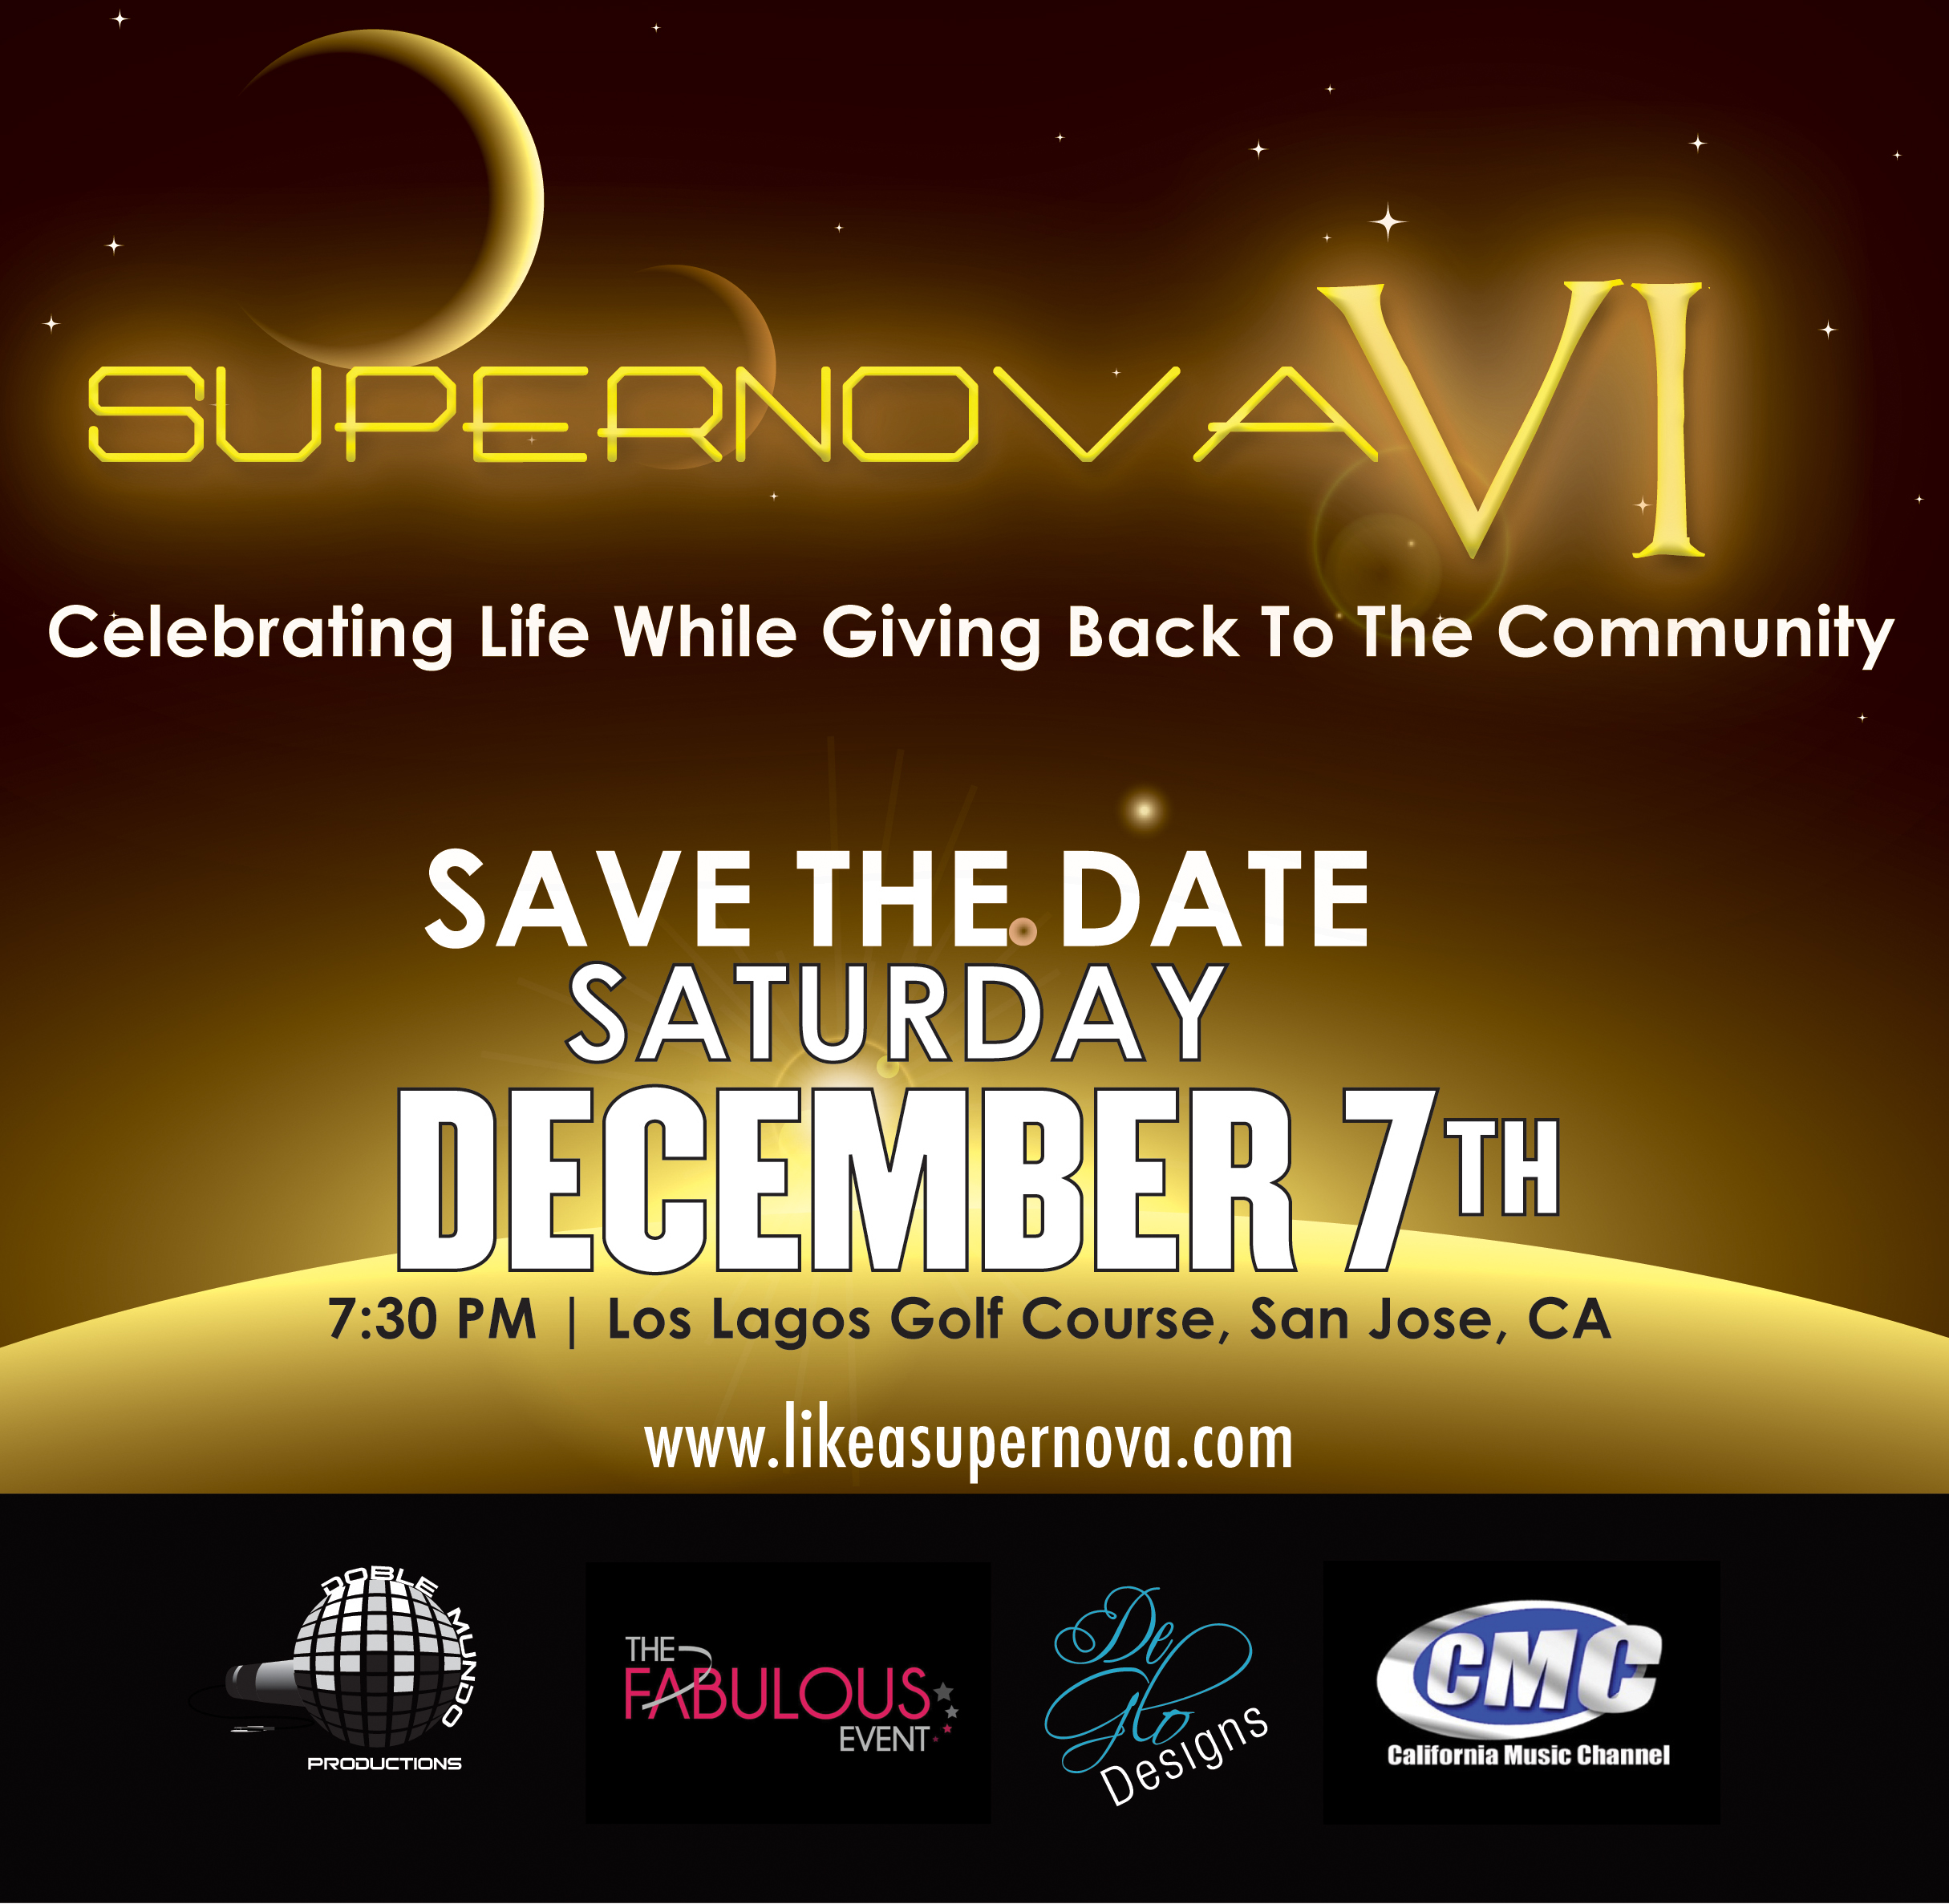 Supernova VI @ Los Lagos Golf Course's, Club House